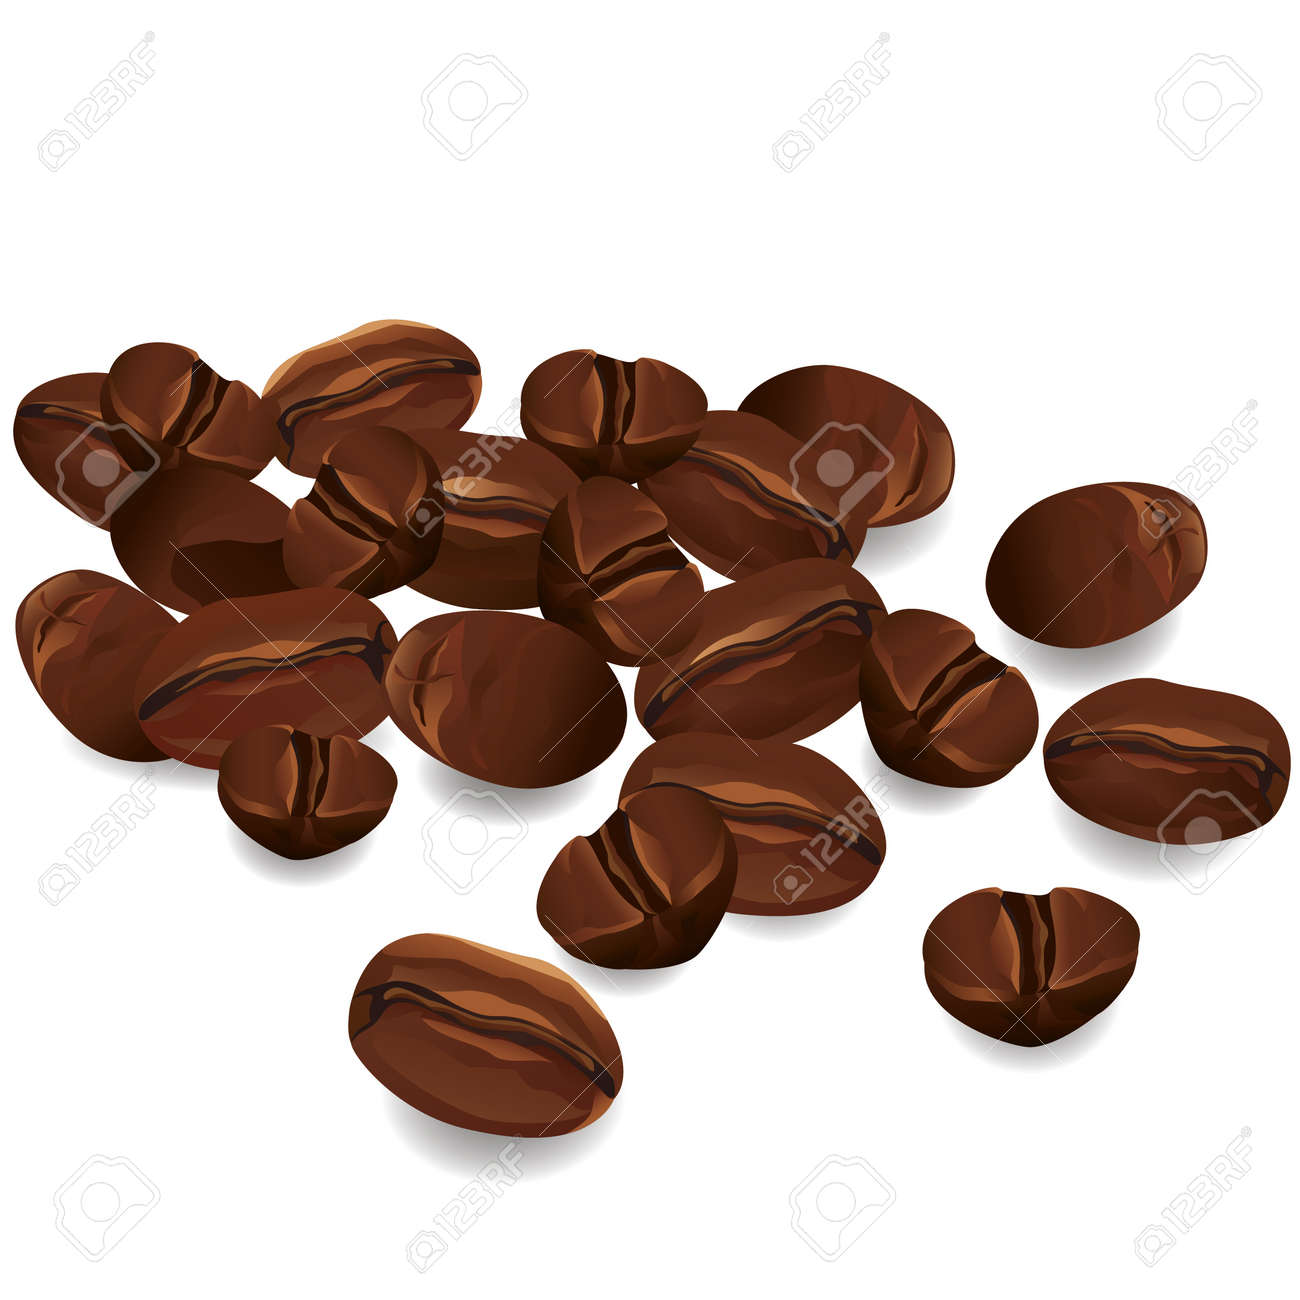 Coffee beans realistic isolated on white background, vector Stock Vector - 12799995